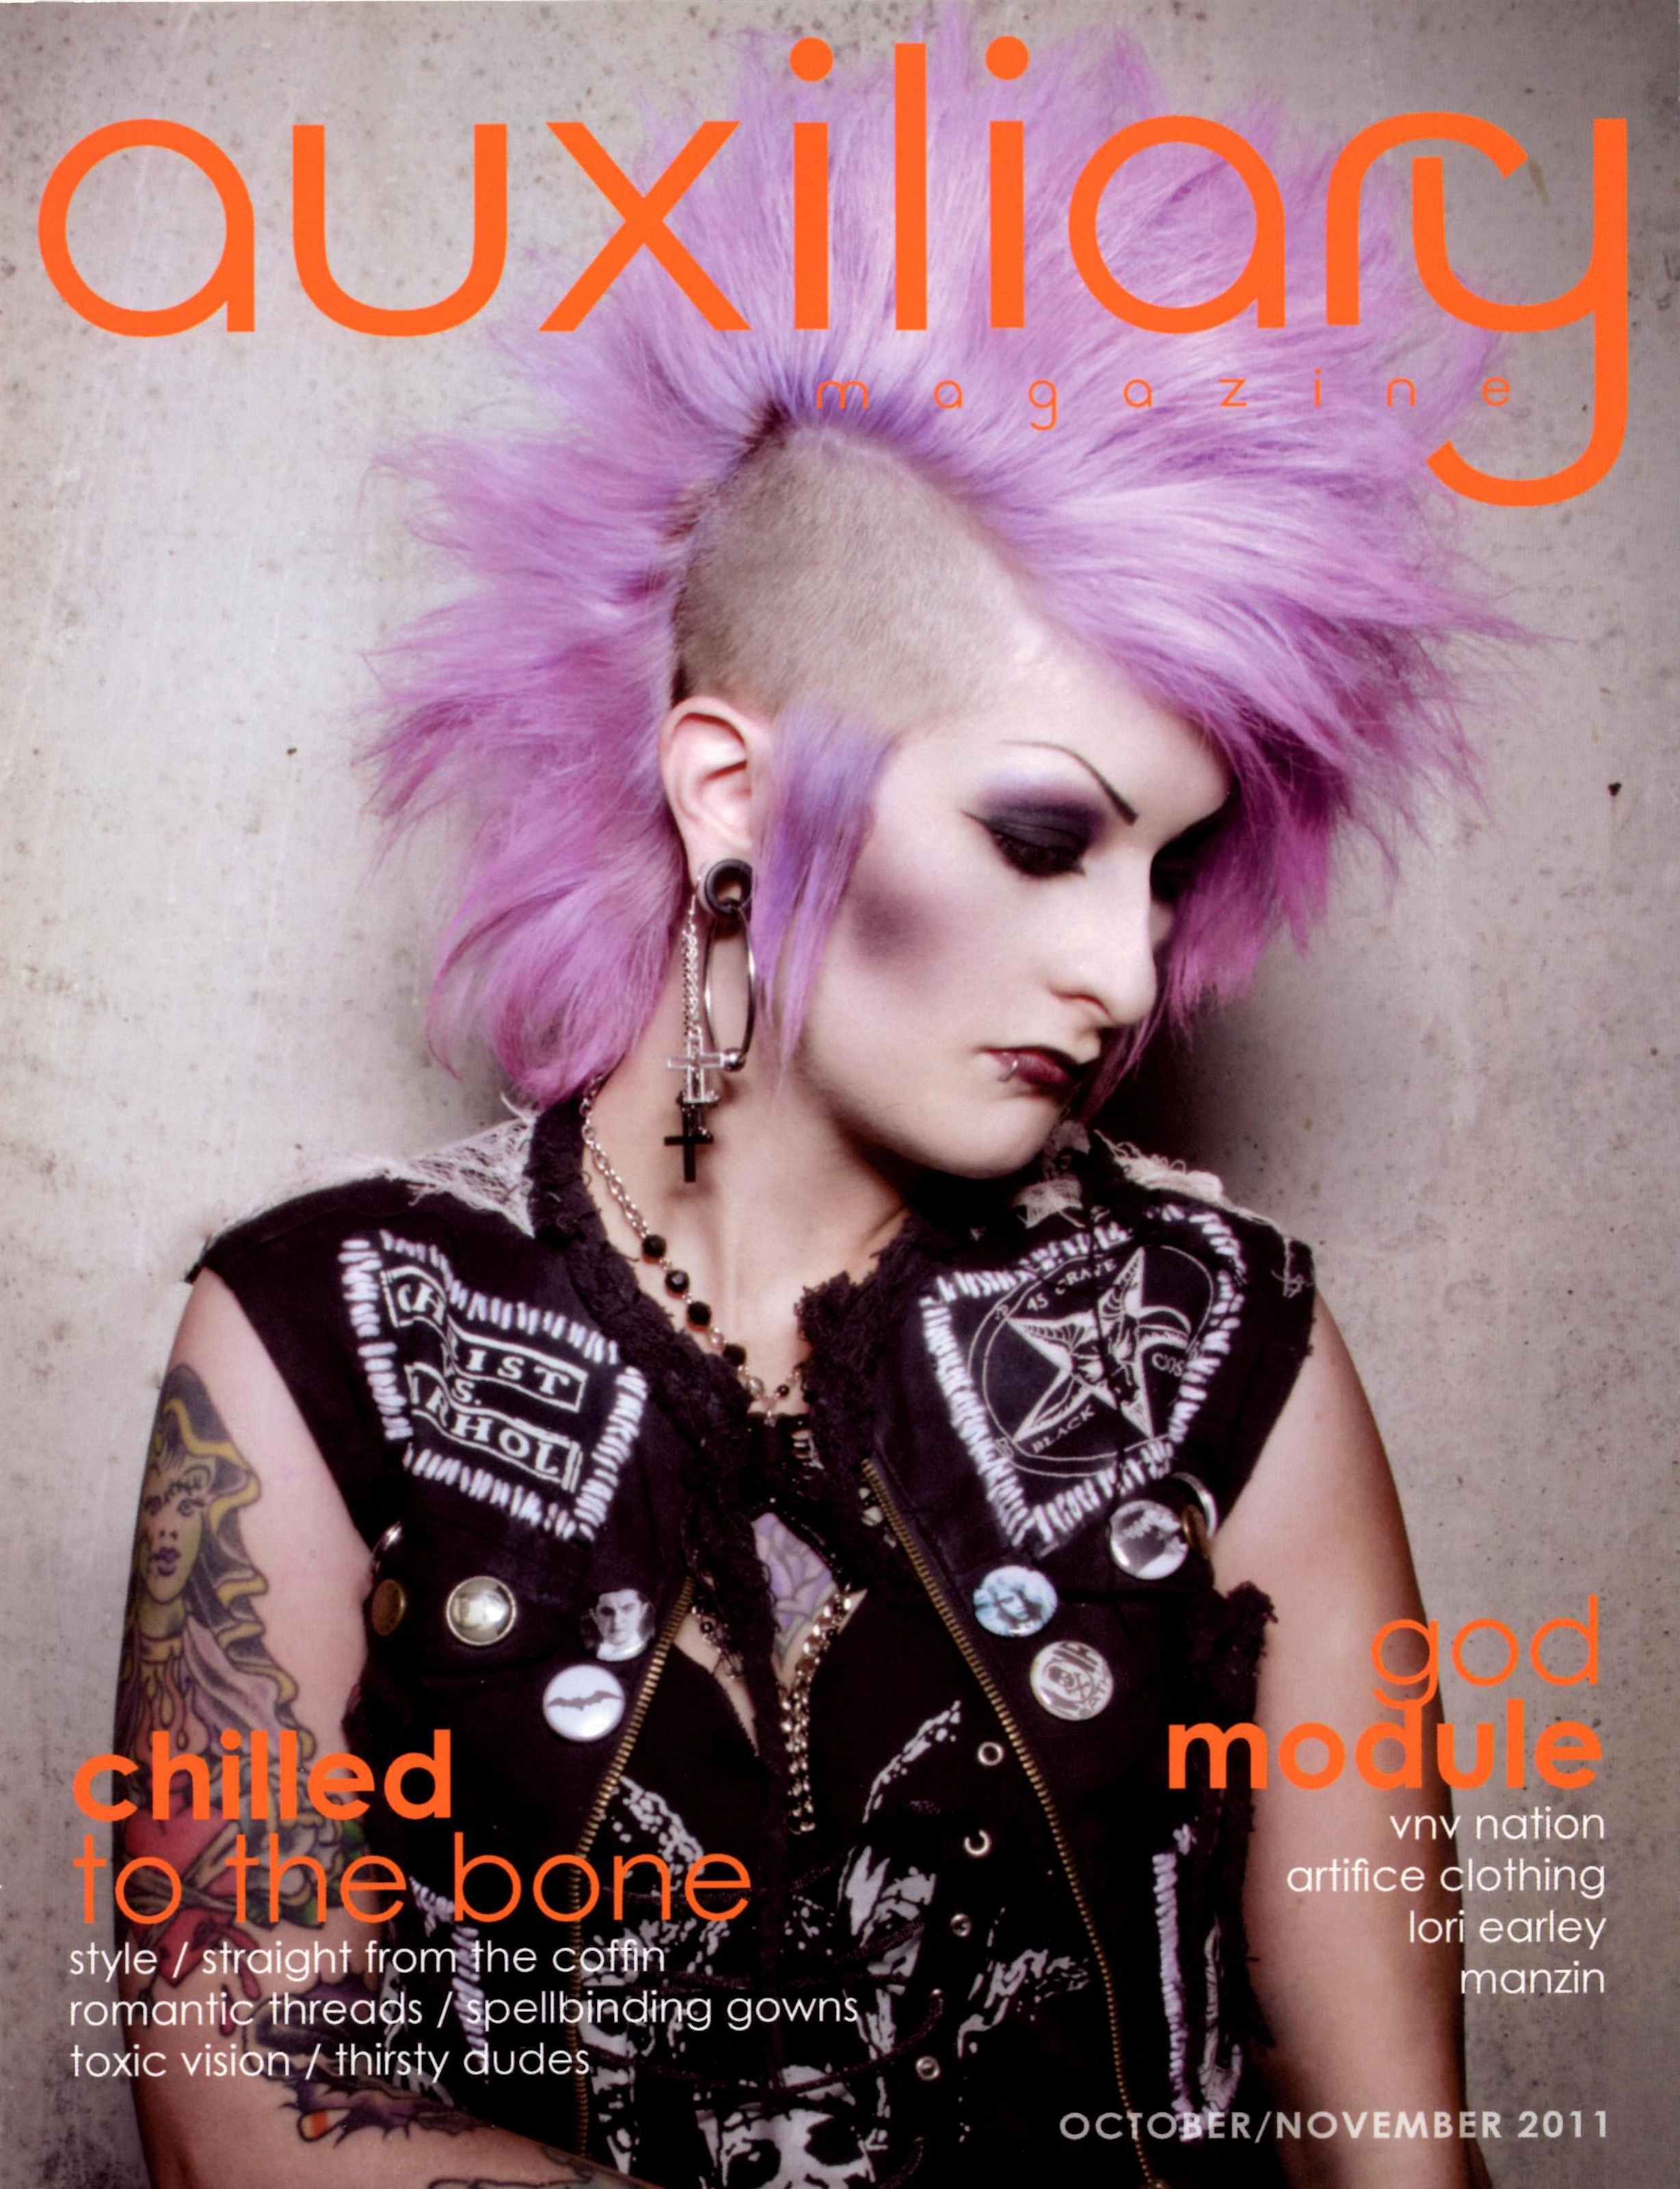 Auxillary Mag Oct-Nov 2011.jpg